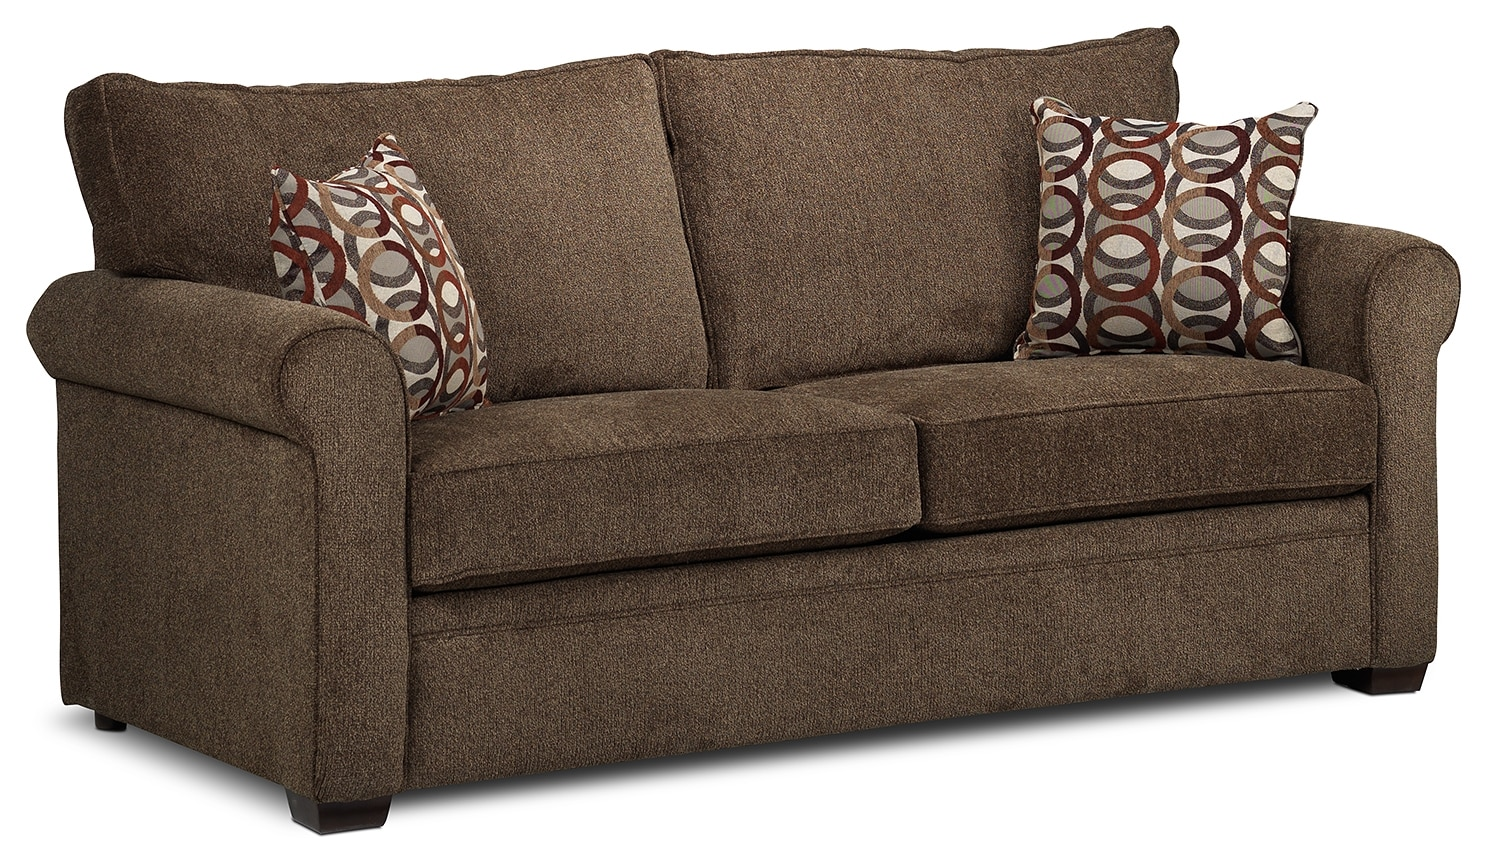 Sofa beds canada serta augustine convertible sofa bed for Sofa bed canada